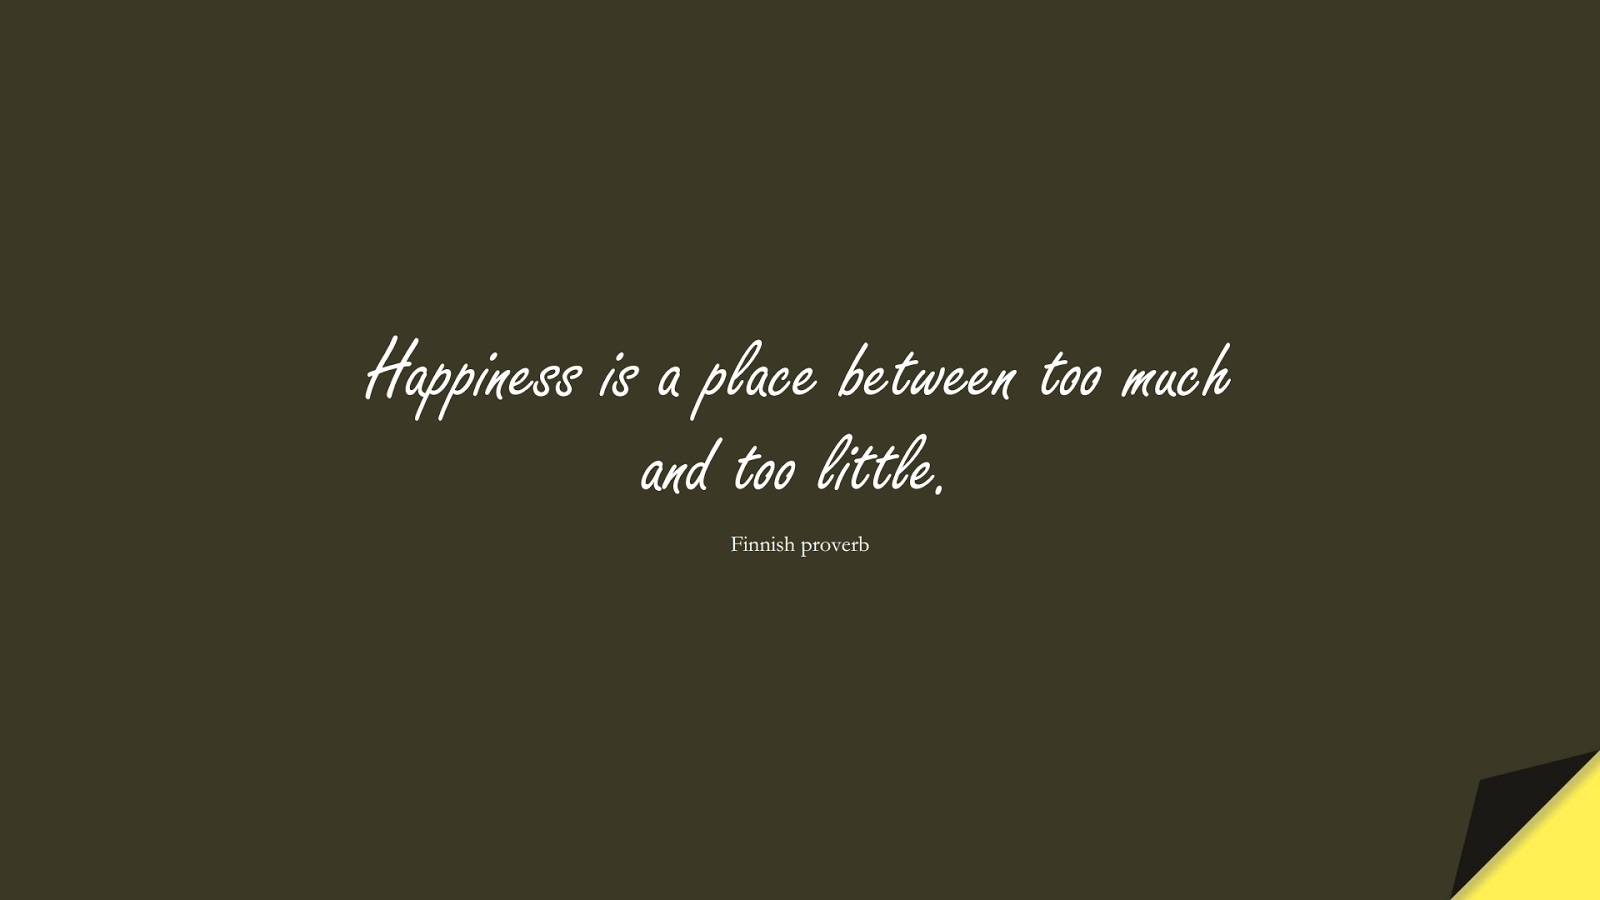 Happiness is a place between too much and too little. (Finnish proverb);  #HappinessQuotes